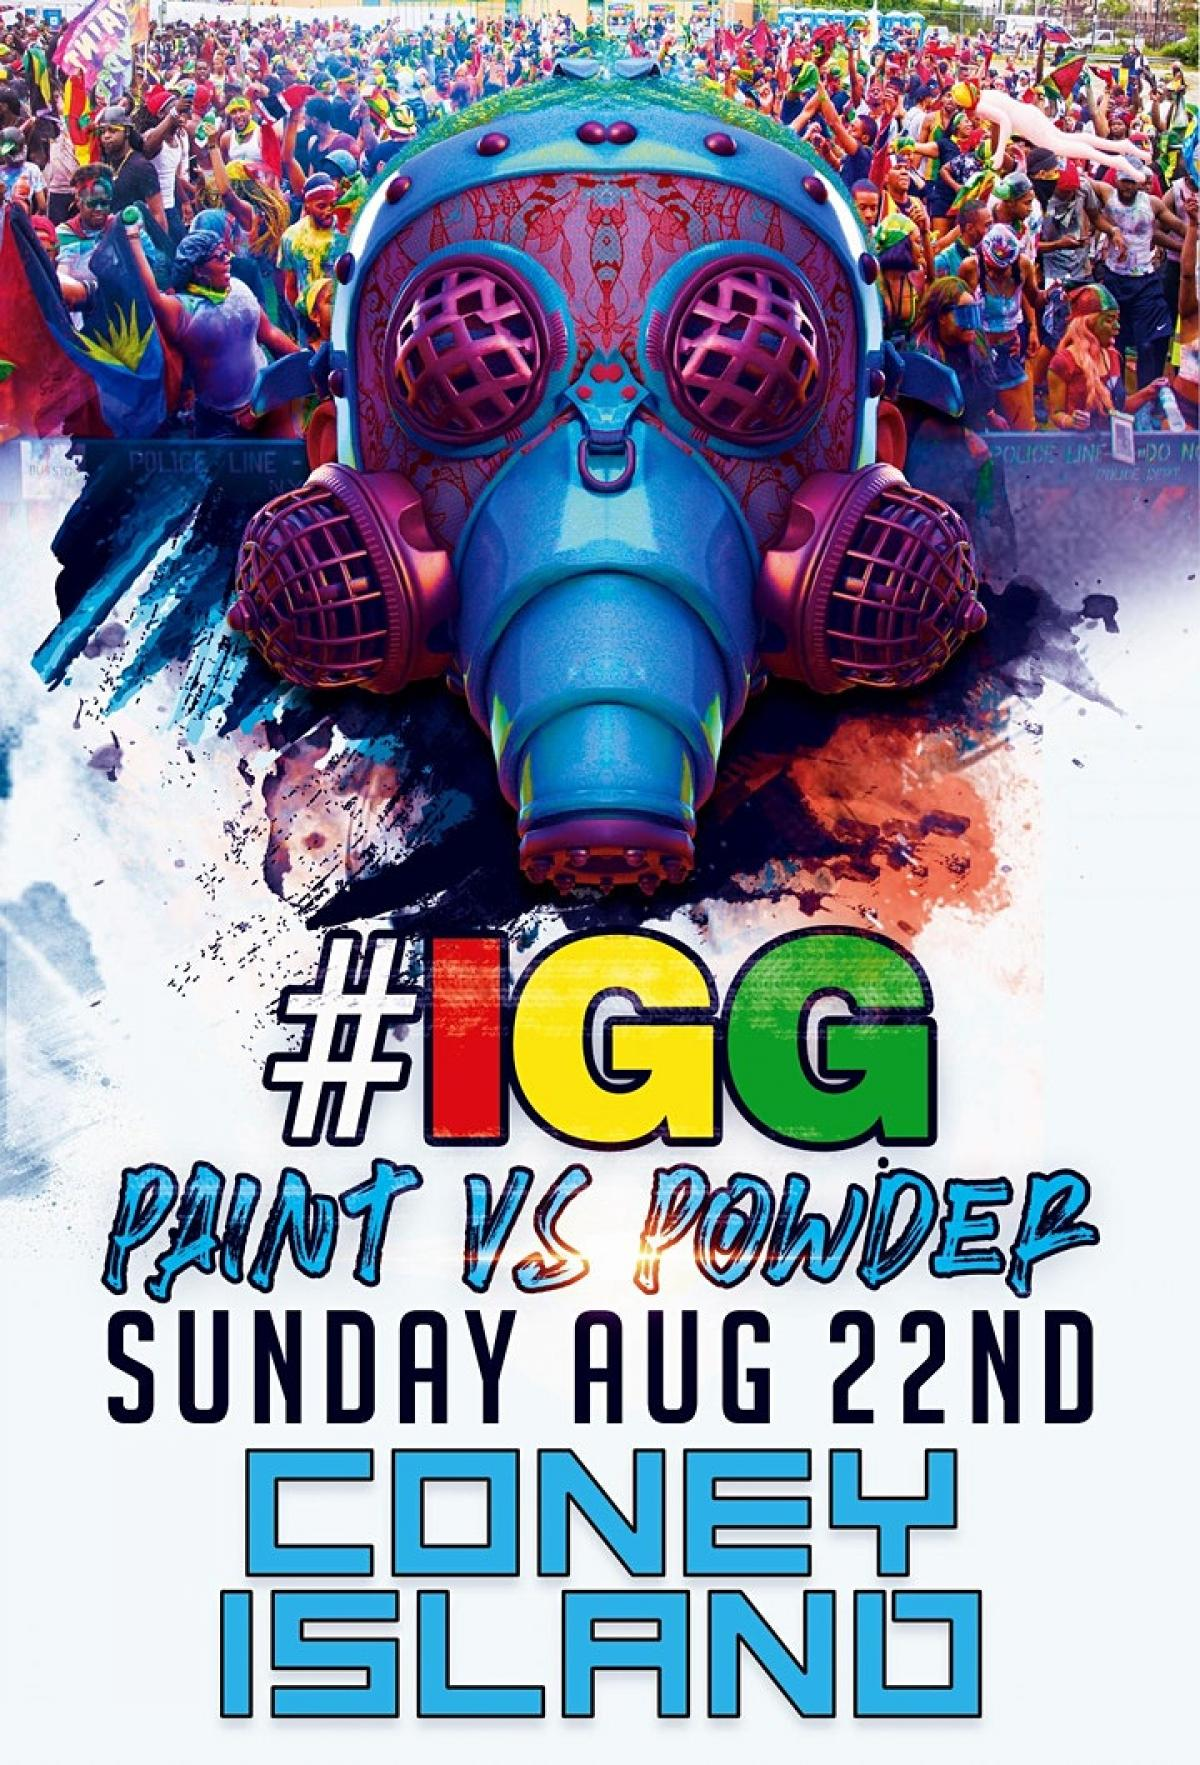 Ice Gold Green Paint Vs Powder 2021 flyer or graphic.